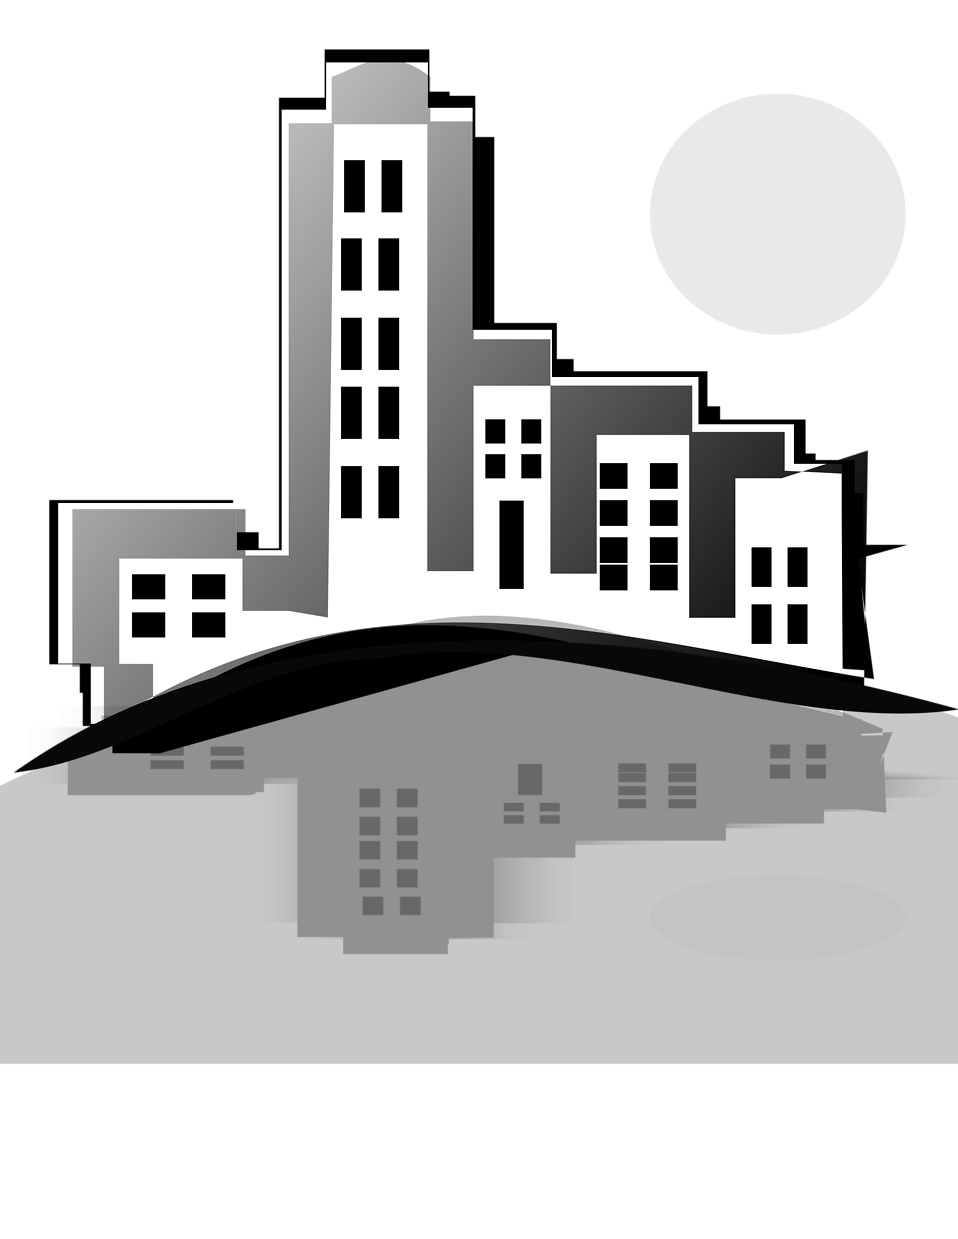 Office clipart city building Buildings Free Photo in Stock